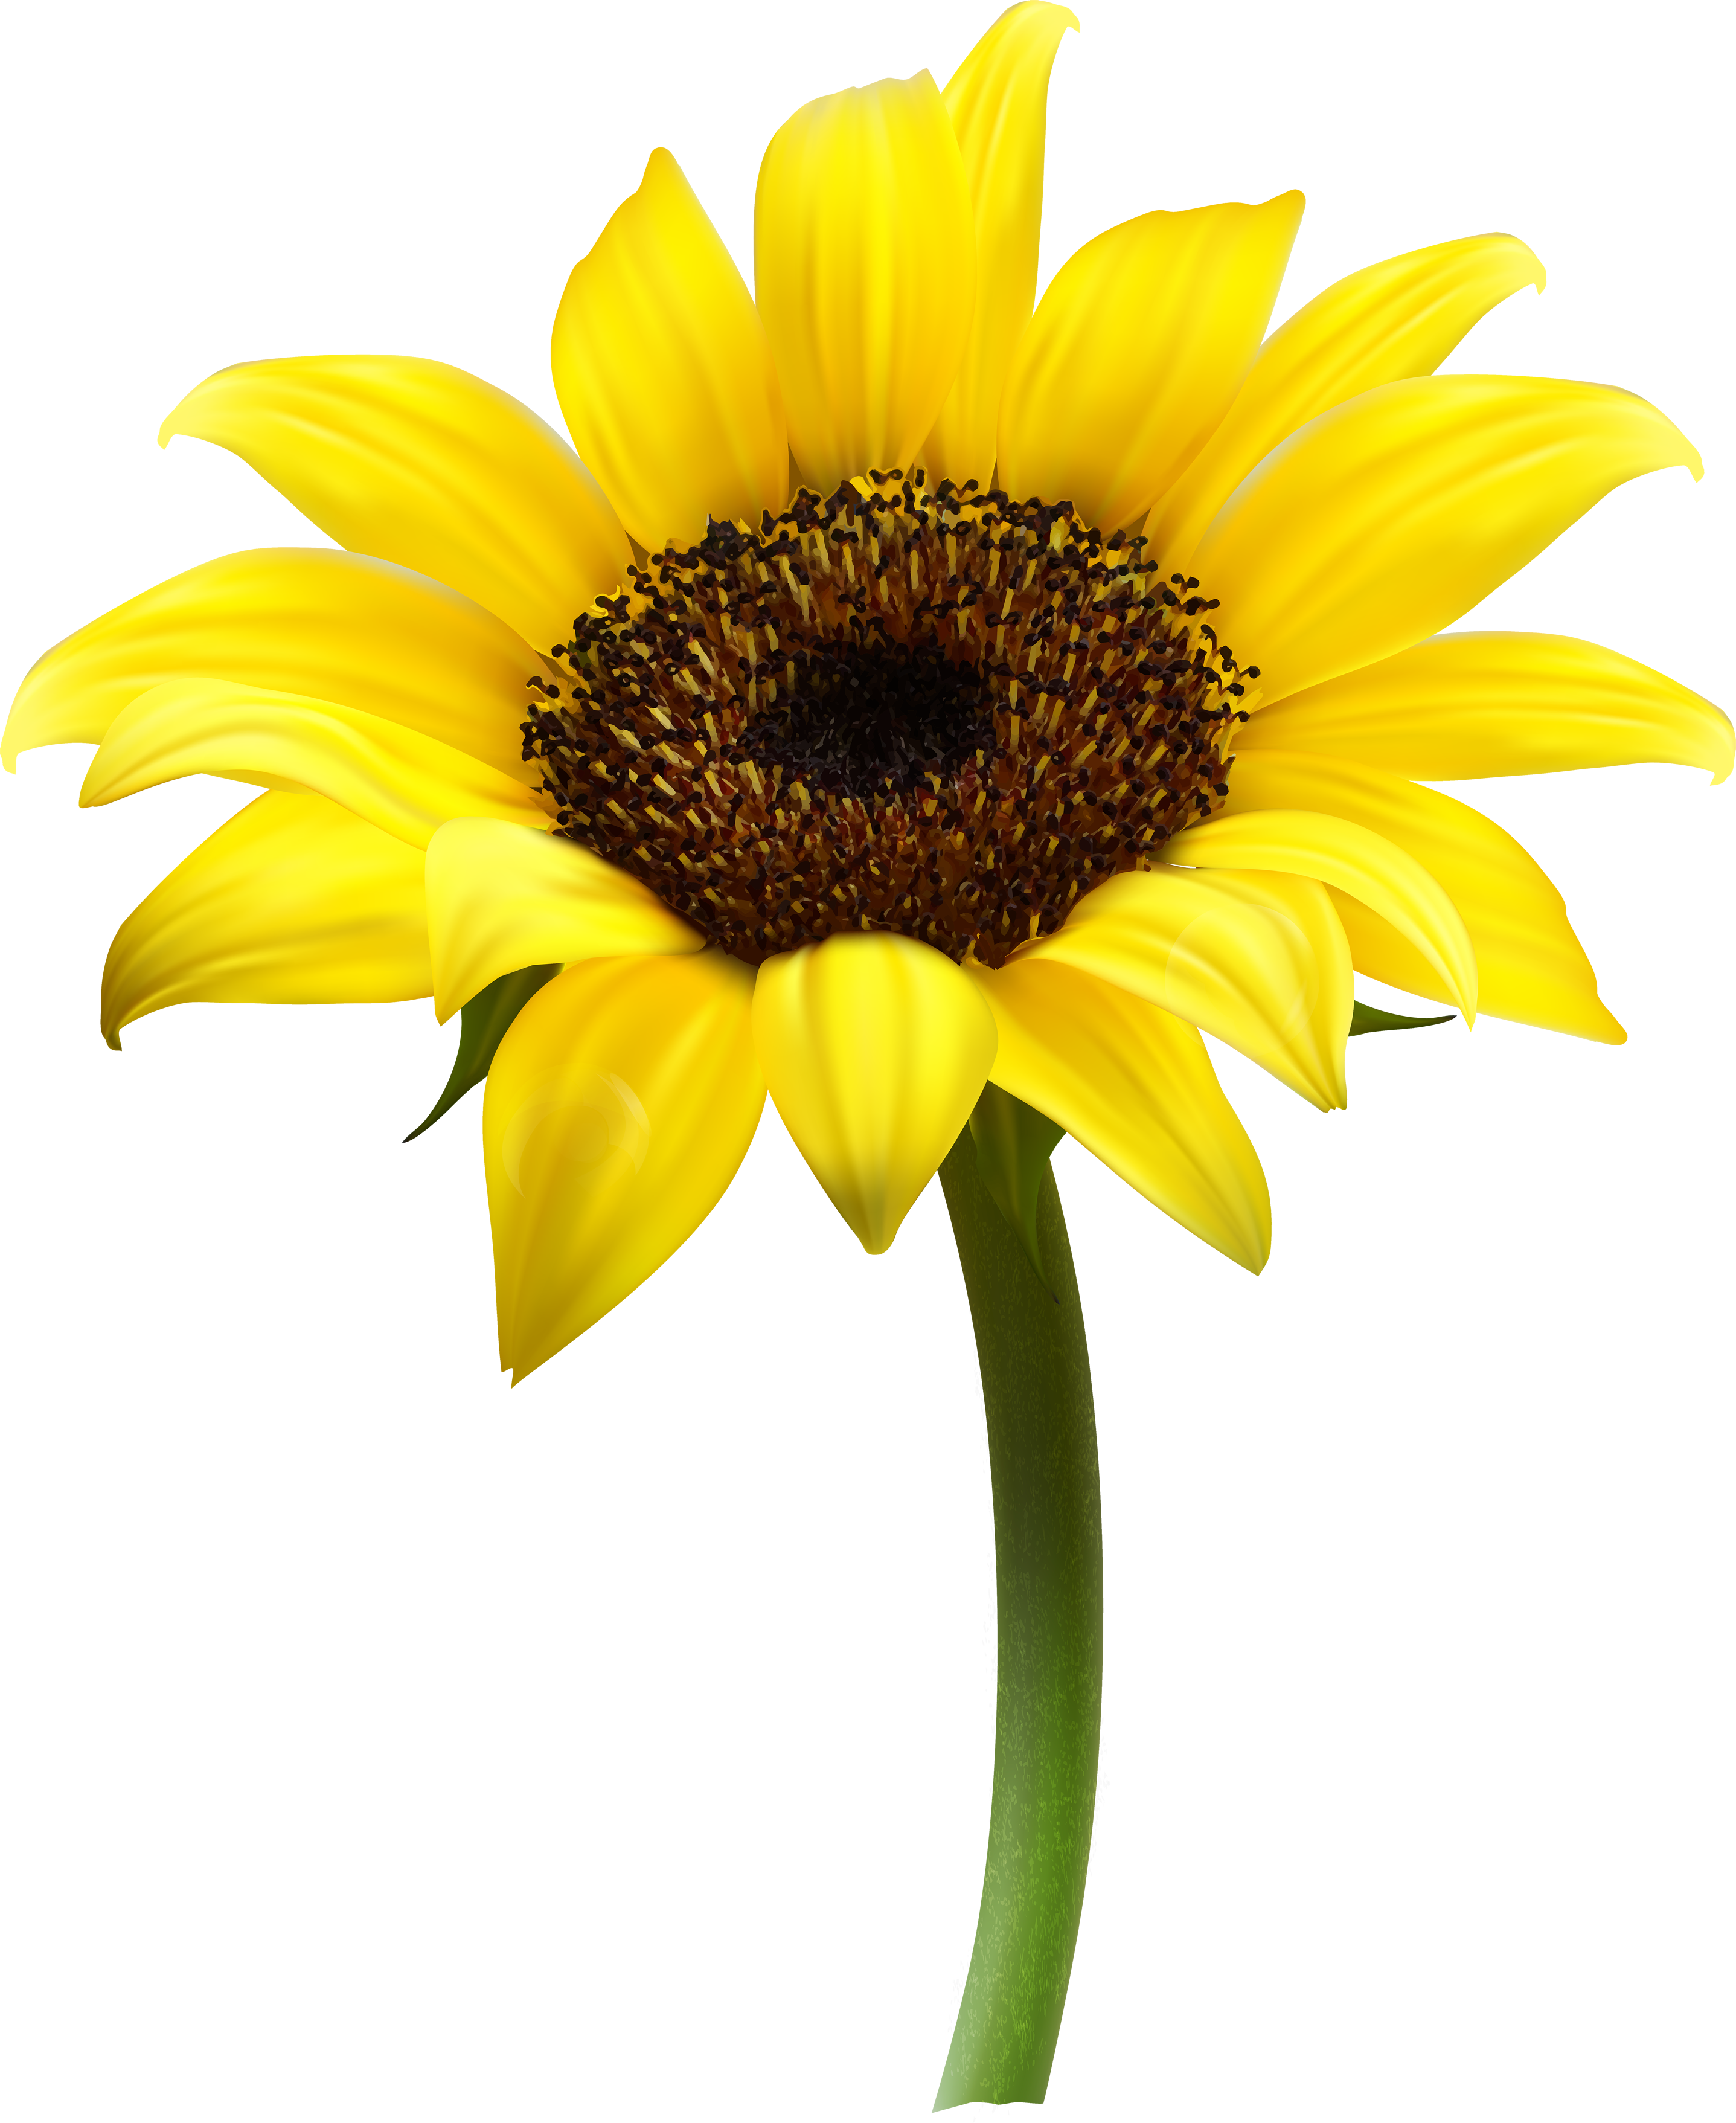 Images free download. Sunflower vector png